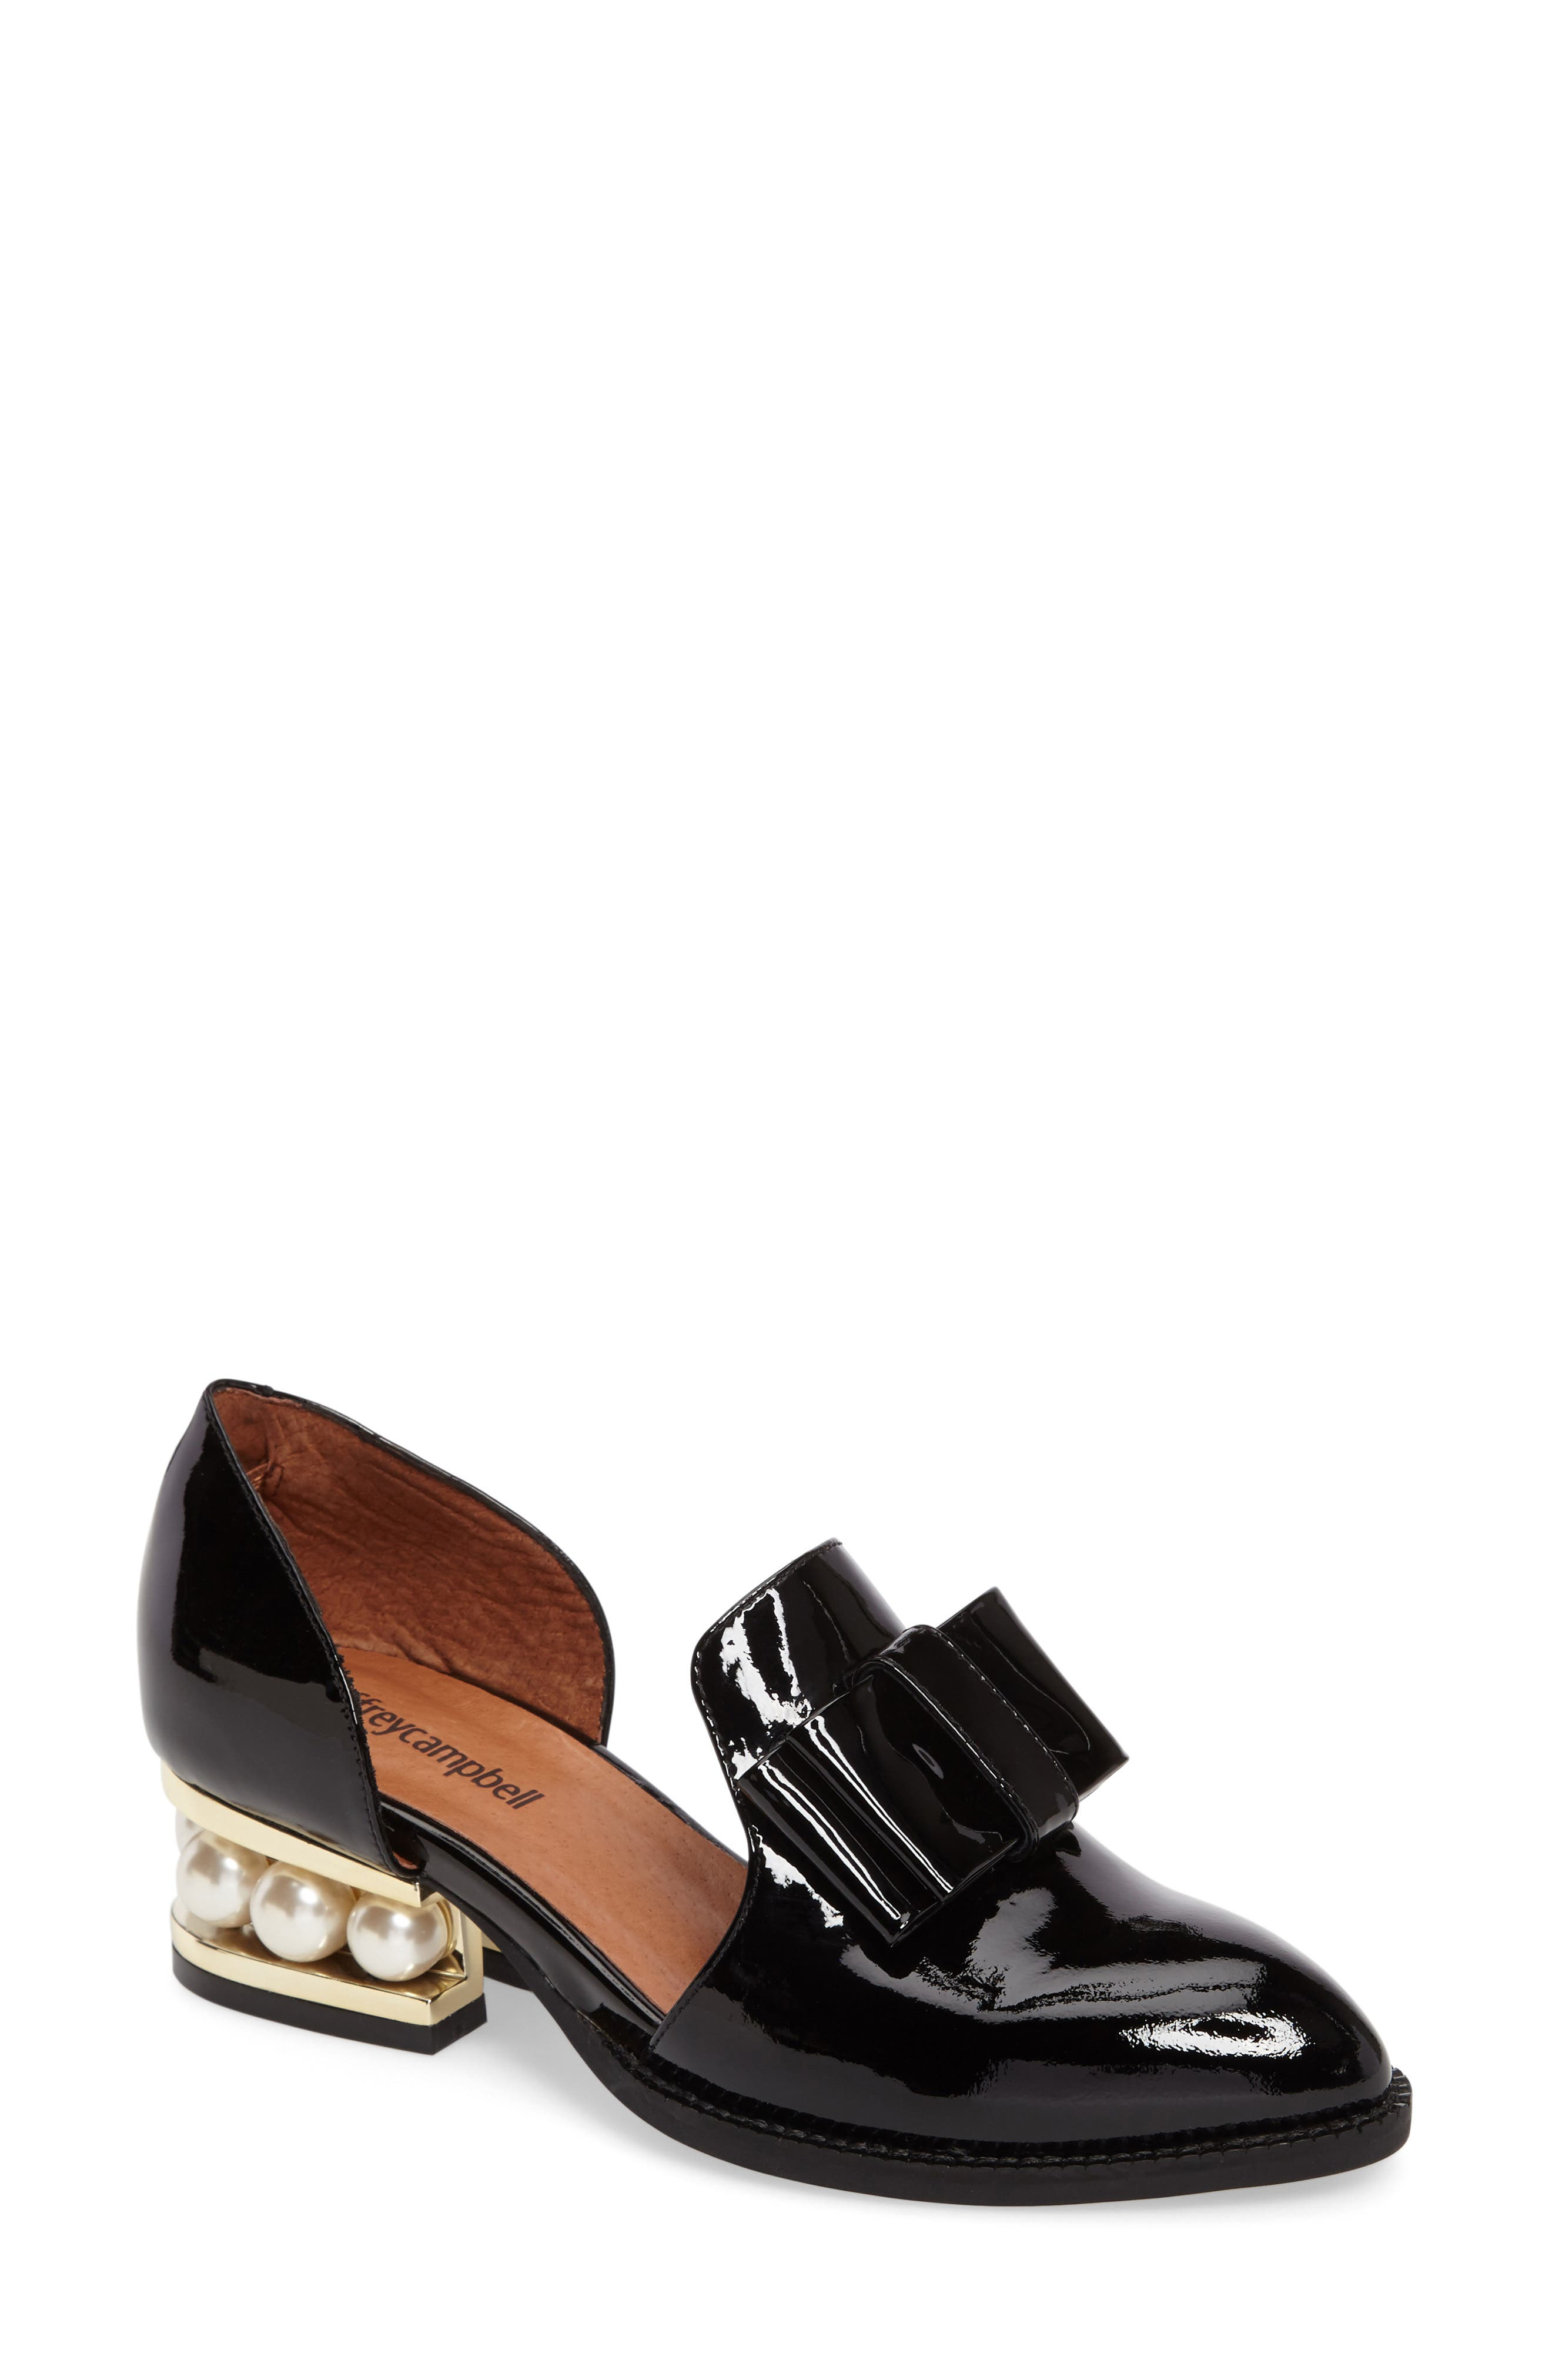 Main Image - Jeffrey Campbell Lawbow Loafer (Women)